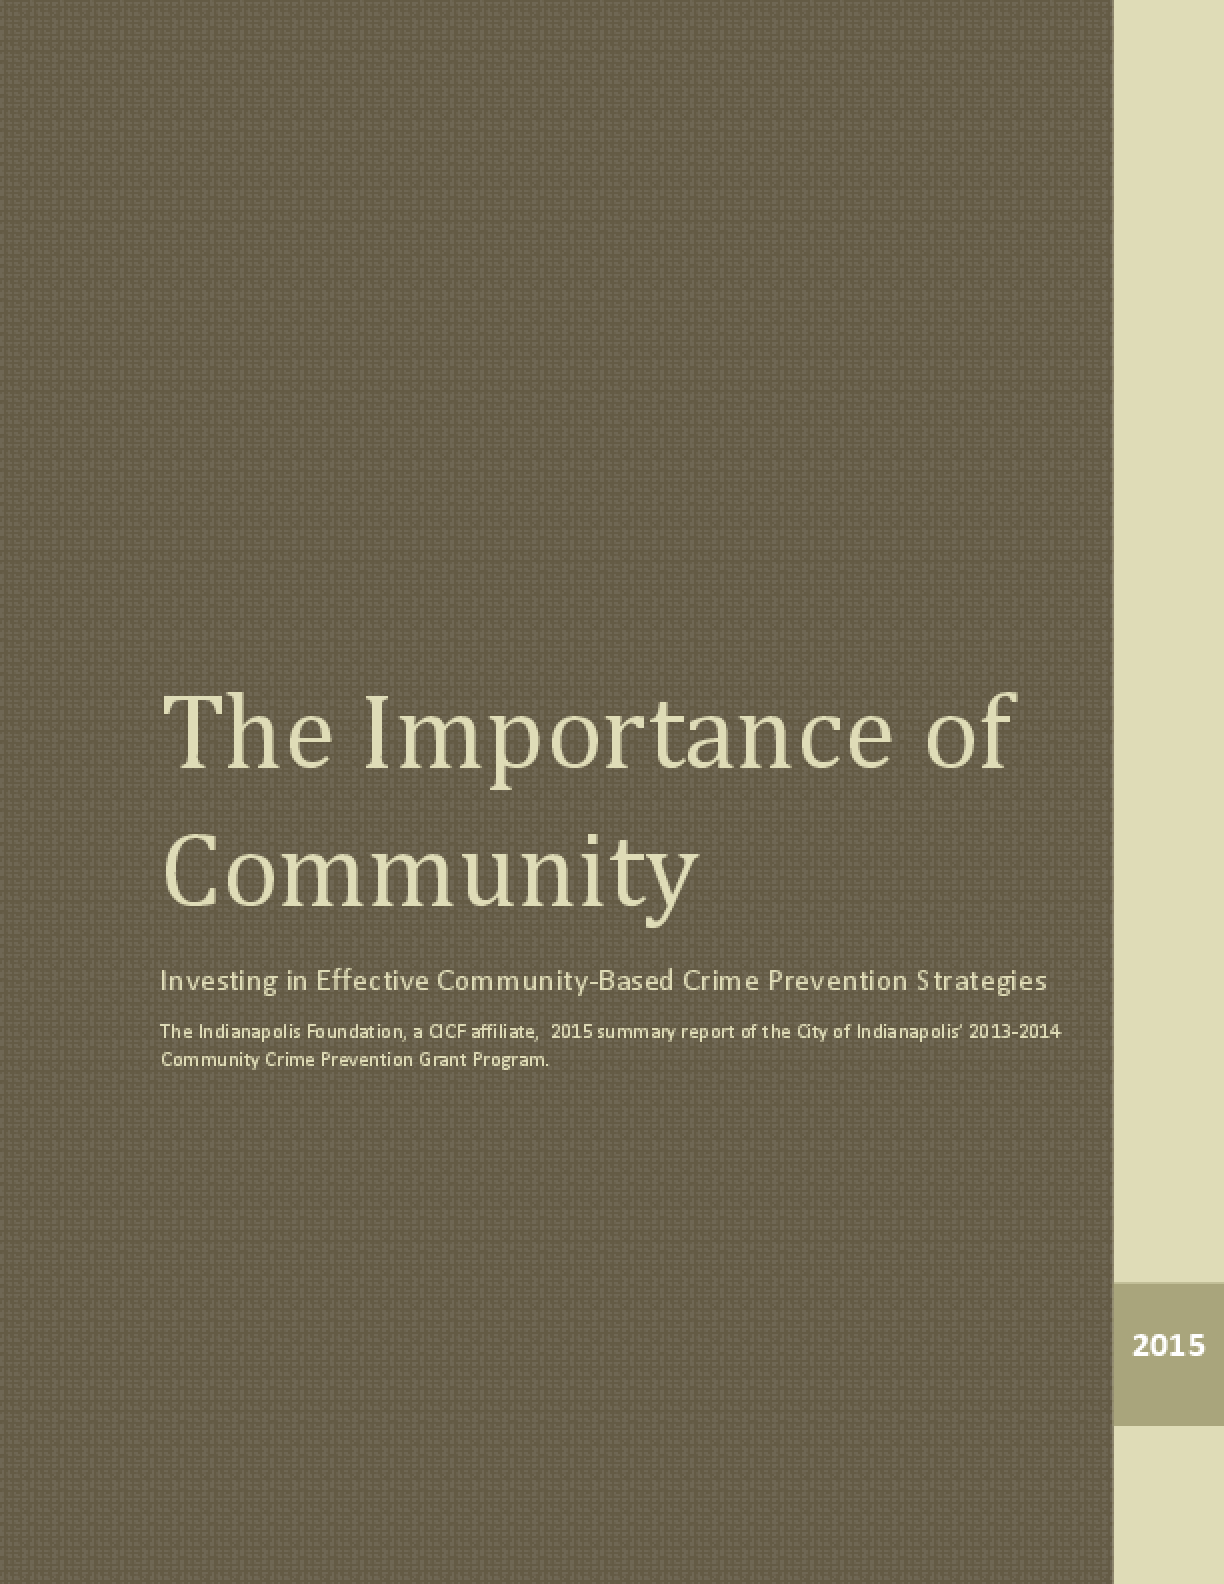 The Importance Of Community: Investing In Effective Community-Based Crime Prevention Strategies